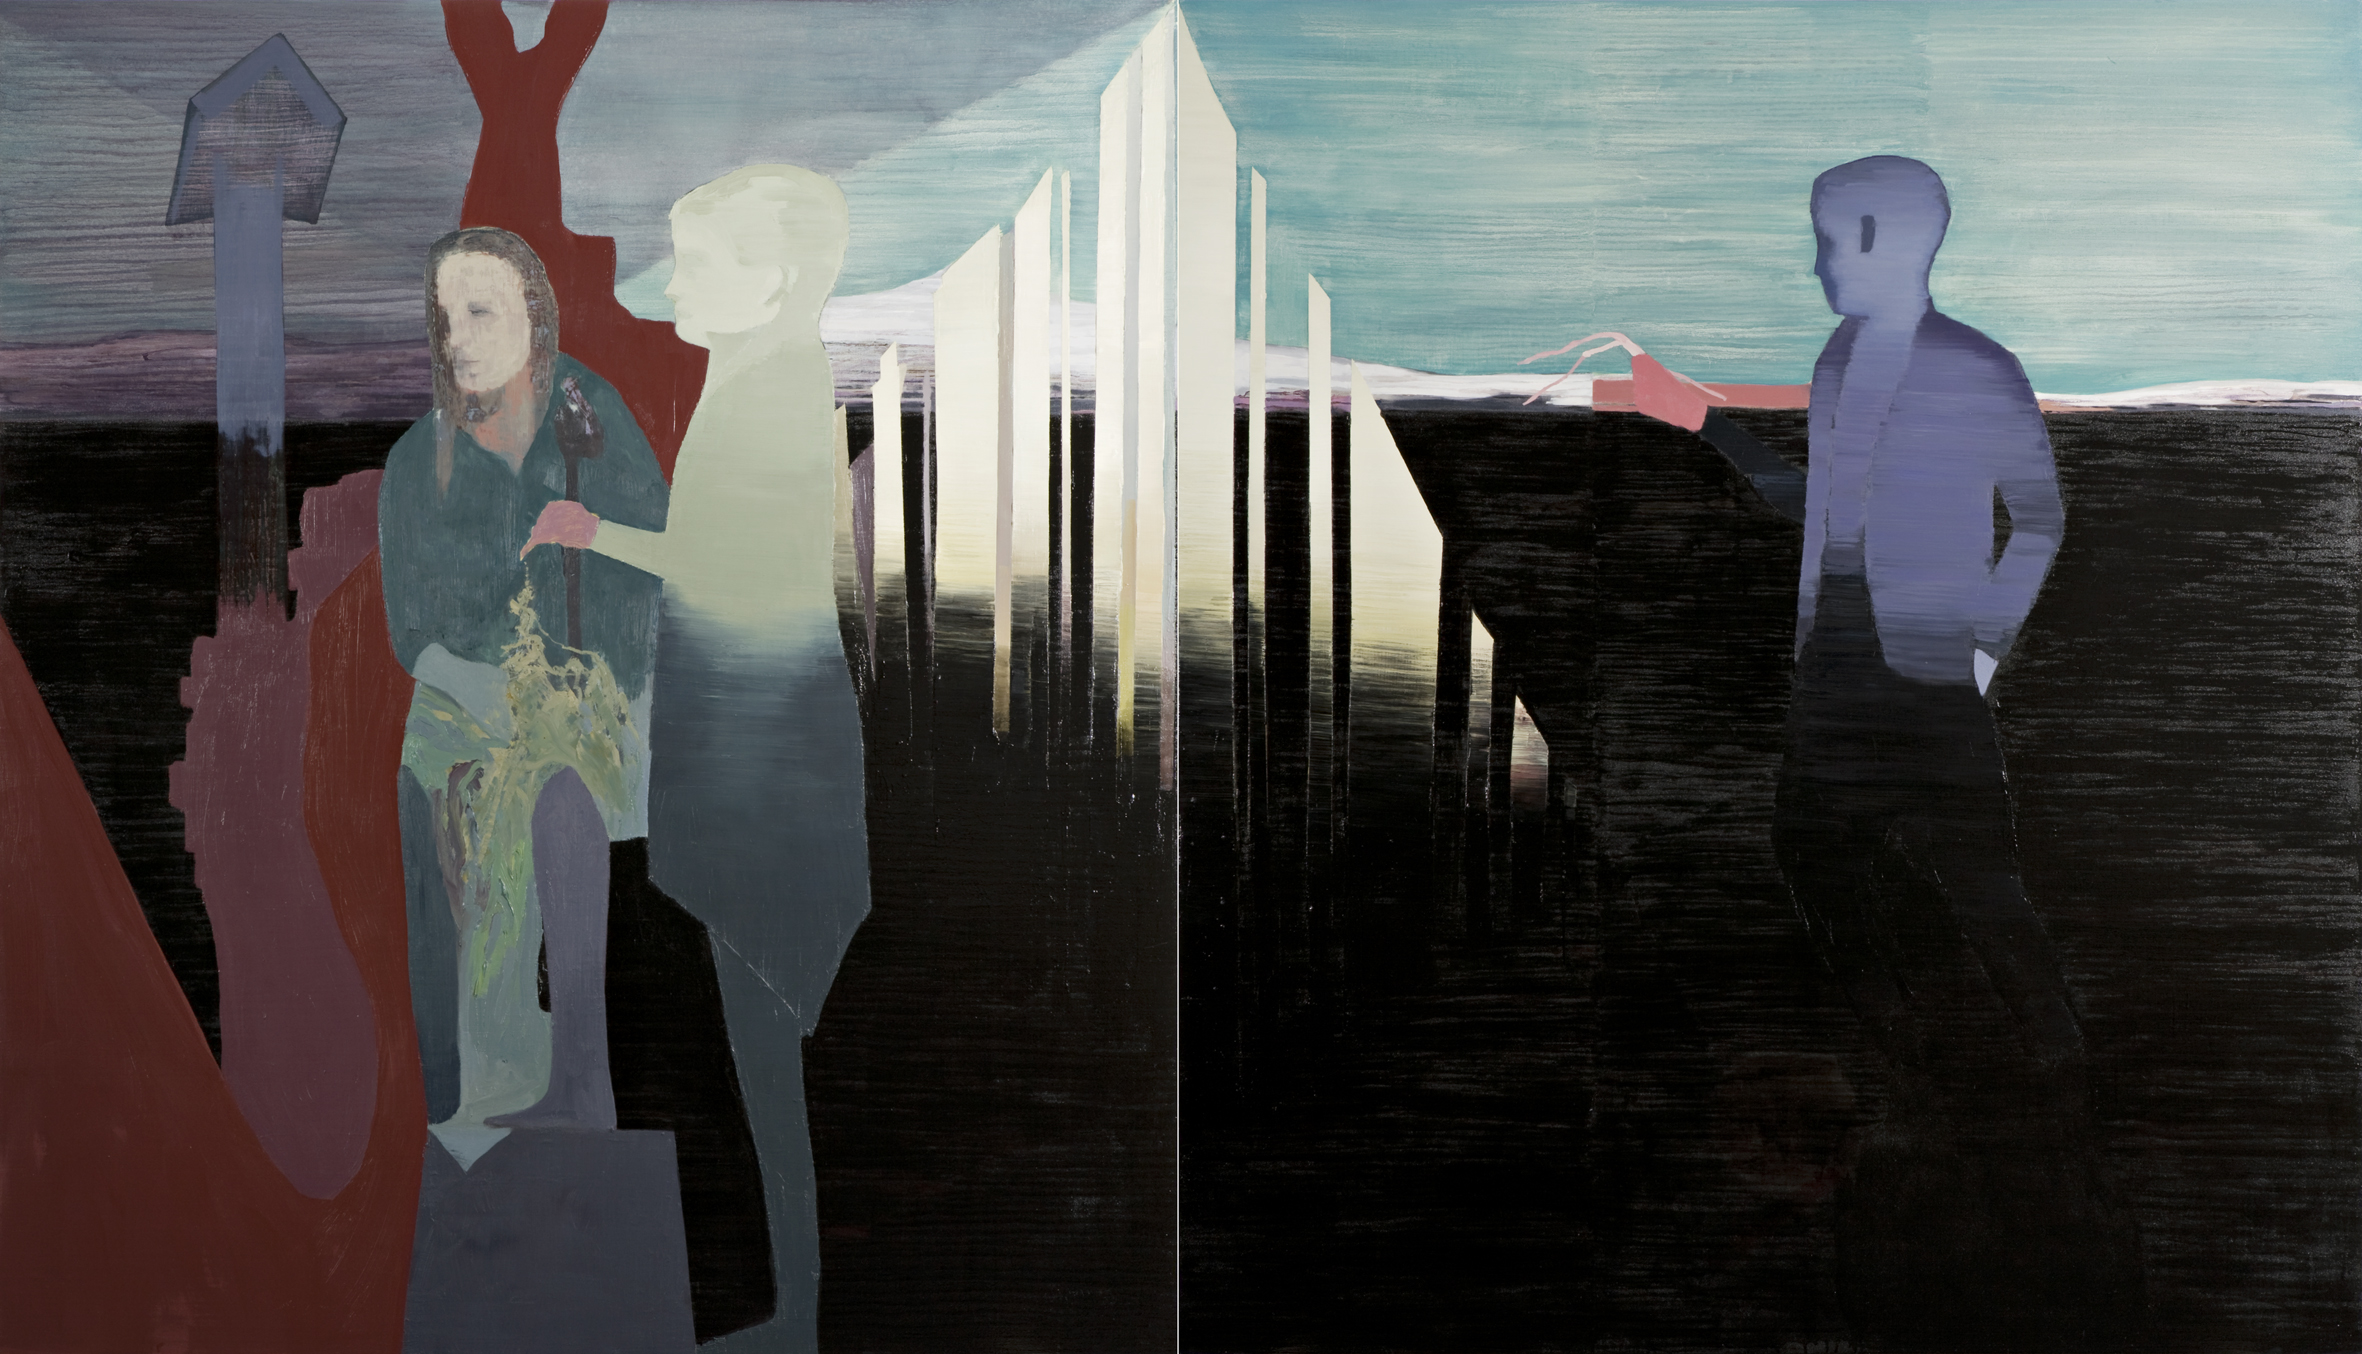 Lakelight, 2007, Oil and acrylic on canvas on panel, 213,5 x 366 cm (2 parts)